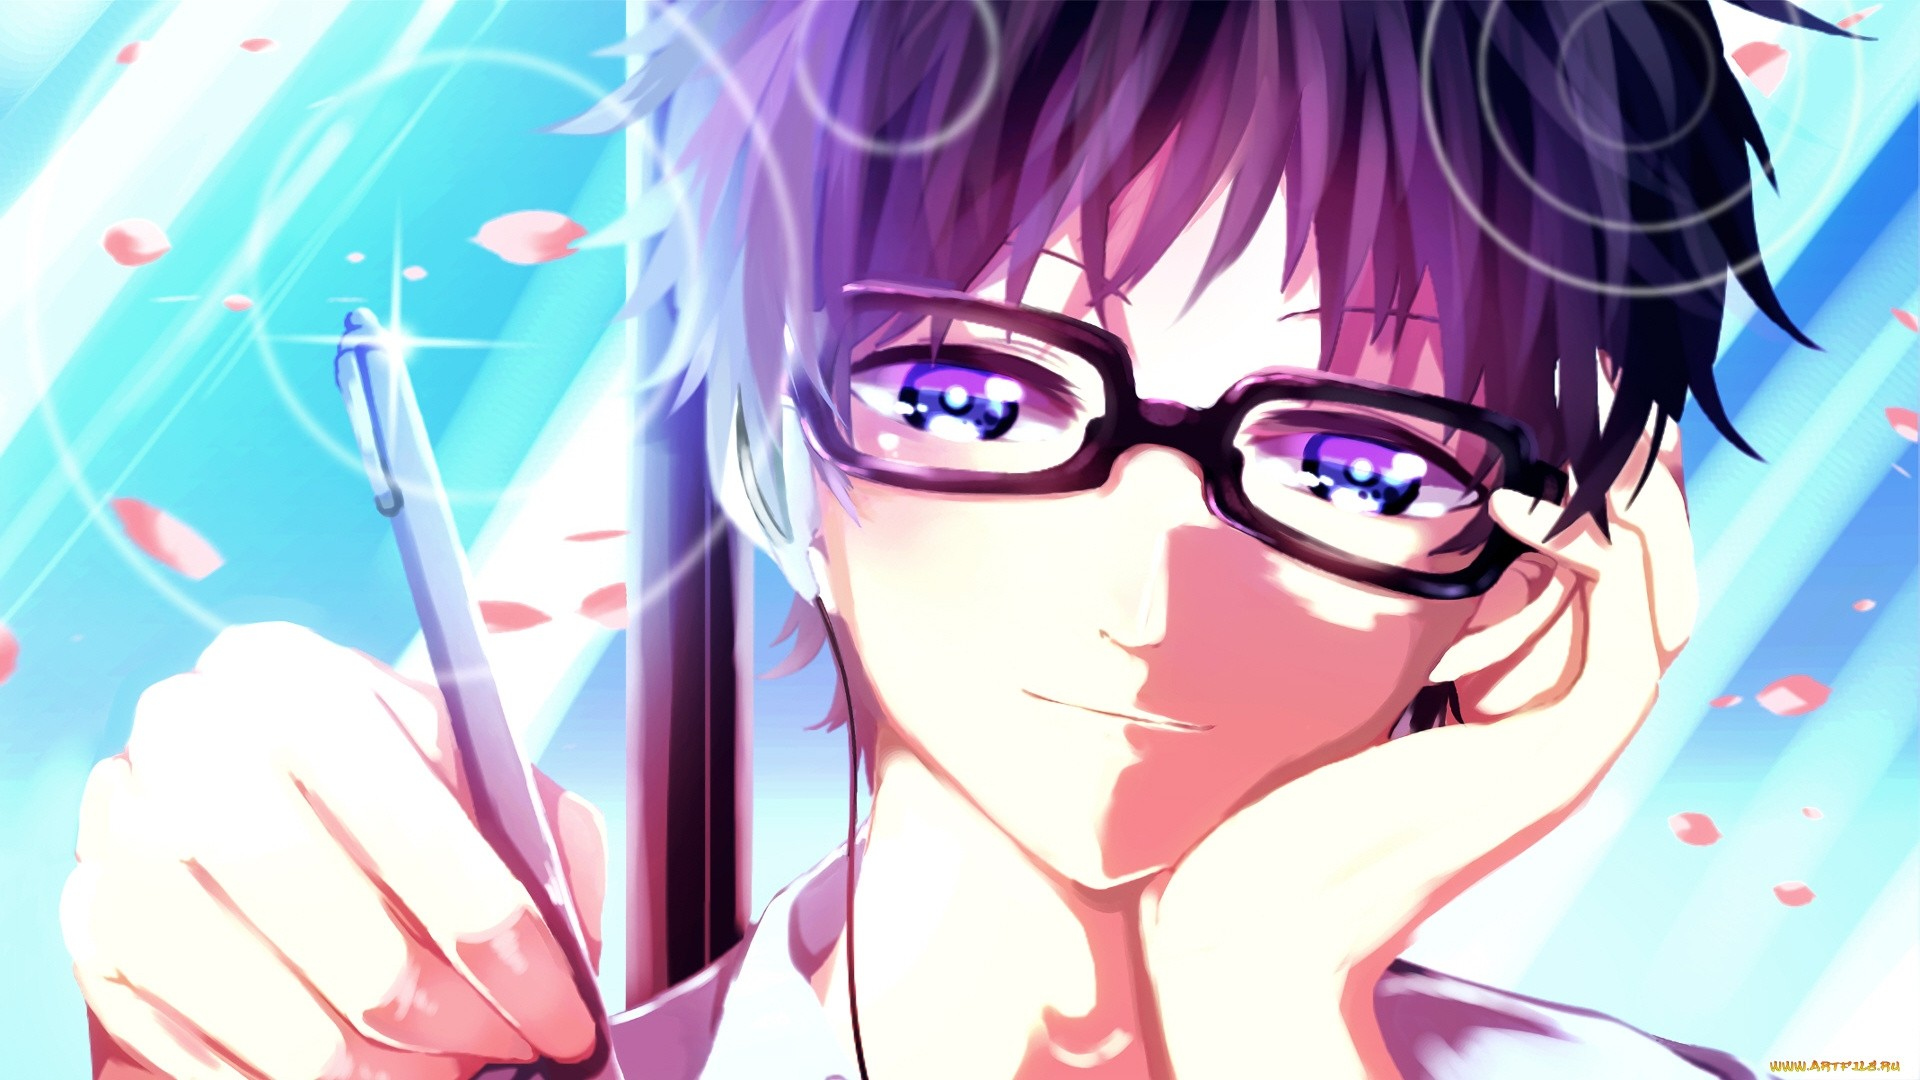 Anime Guy With Glasses Image